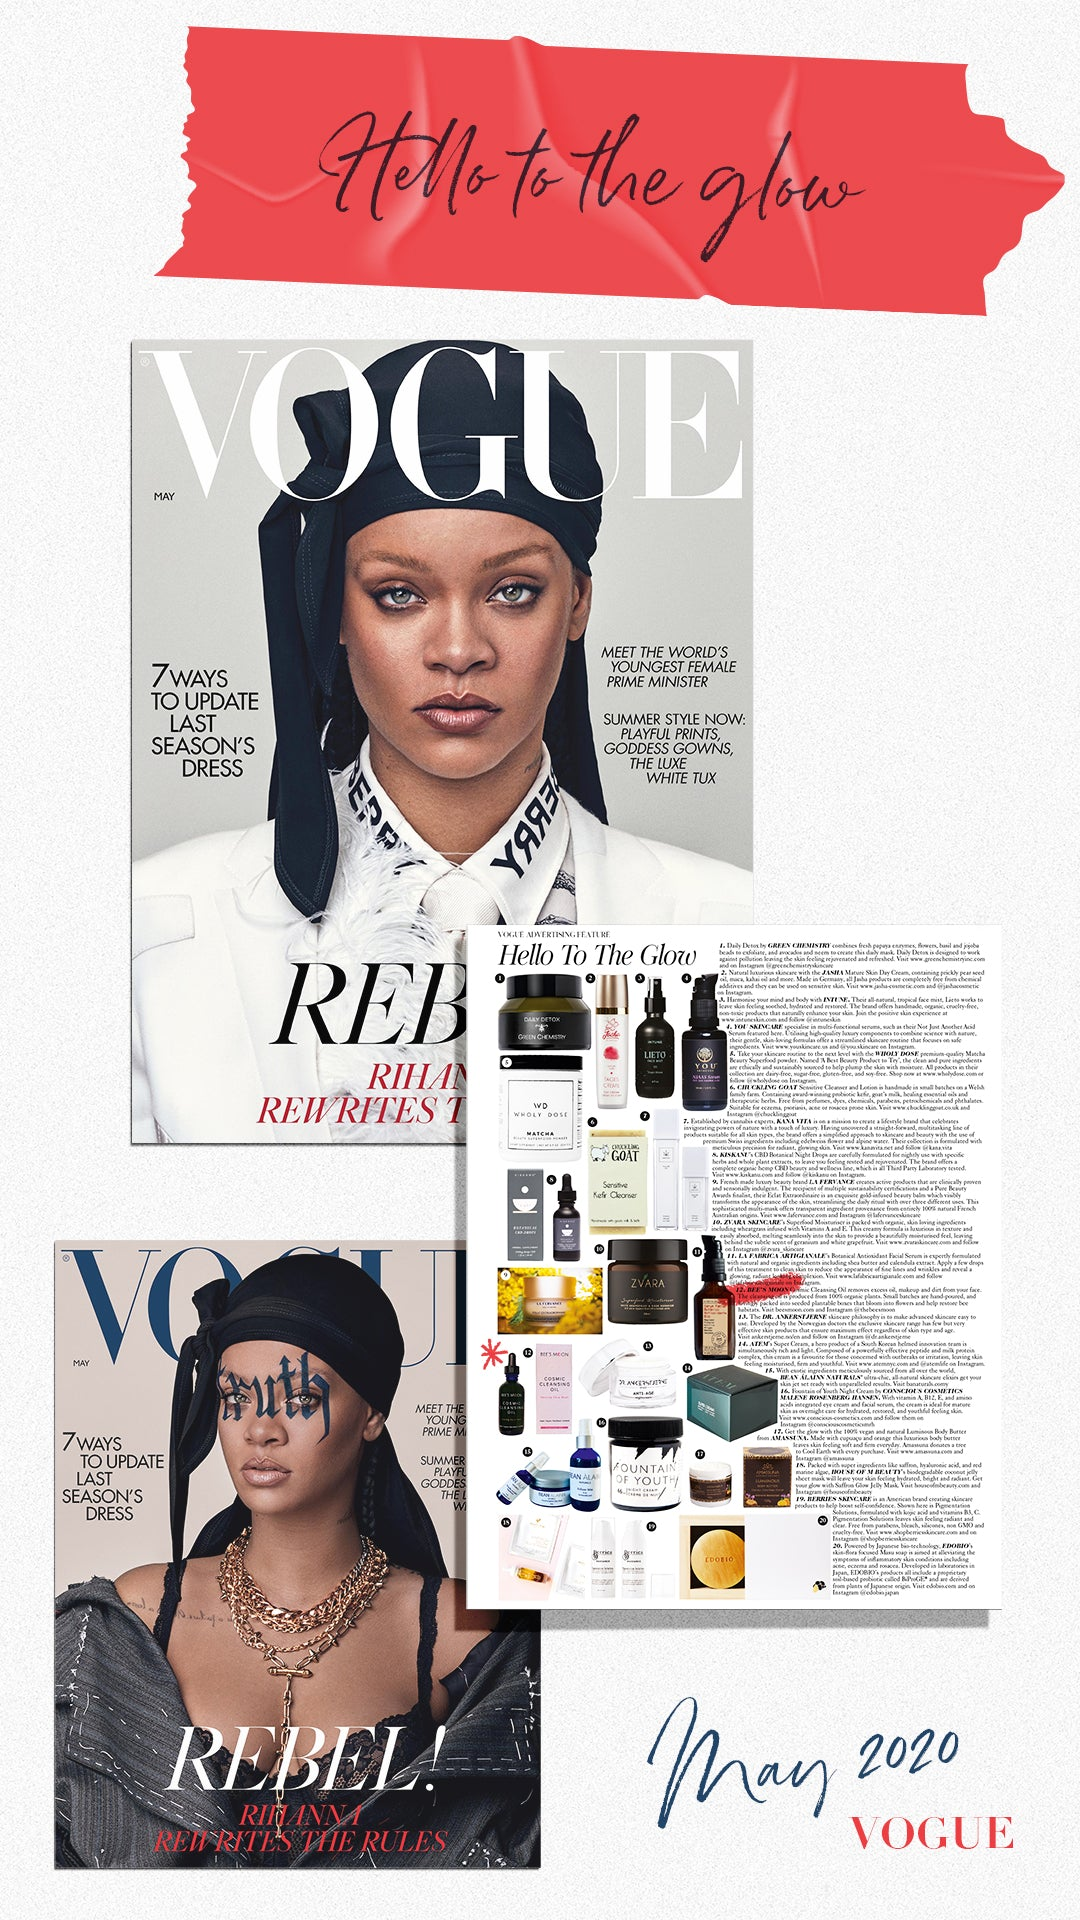 May 2020 Vogue feature Hello To The Glow Cosmic Cleansing Oil